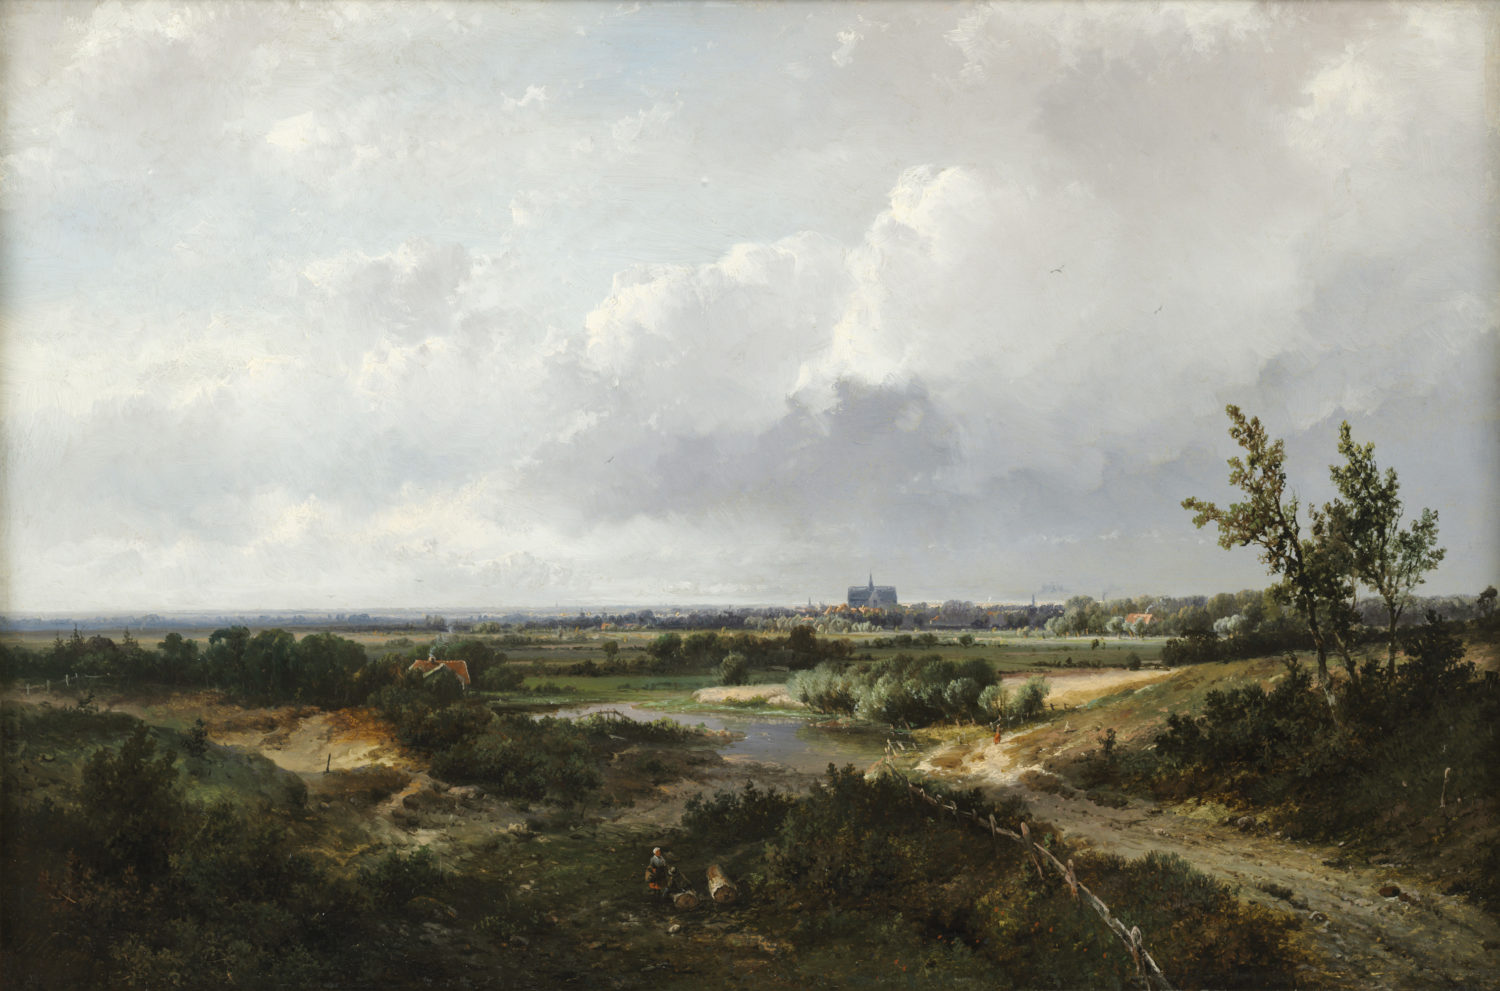 Pieter Lodewijk Francisco Kluyver | An extensive landscape with a town in the distance | Kunsthandel Bies | Bies Gallery